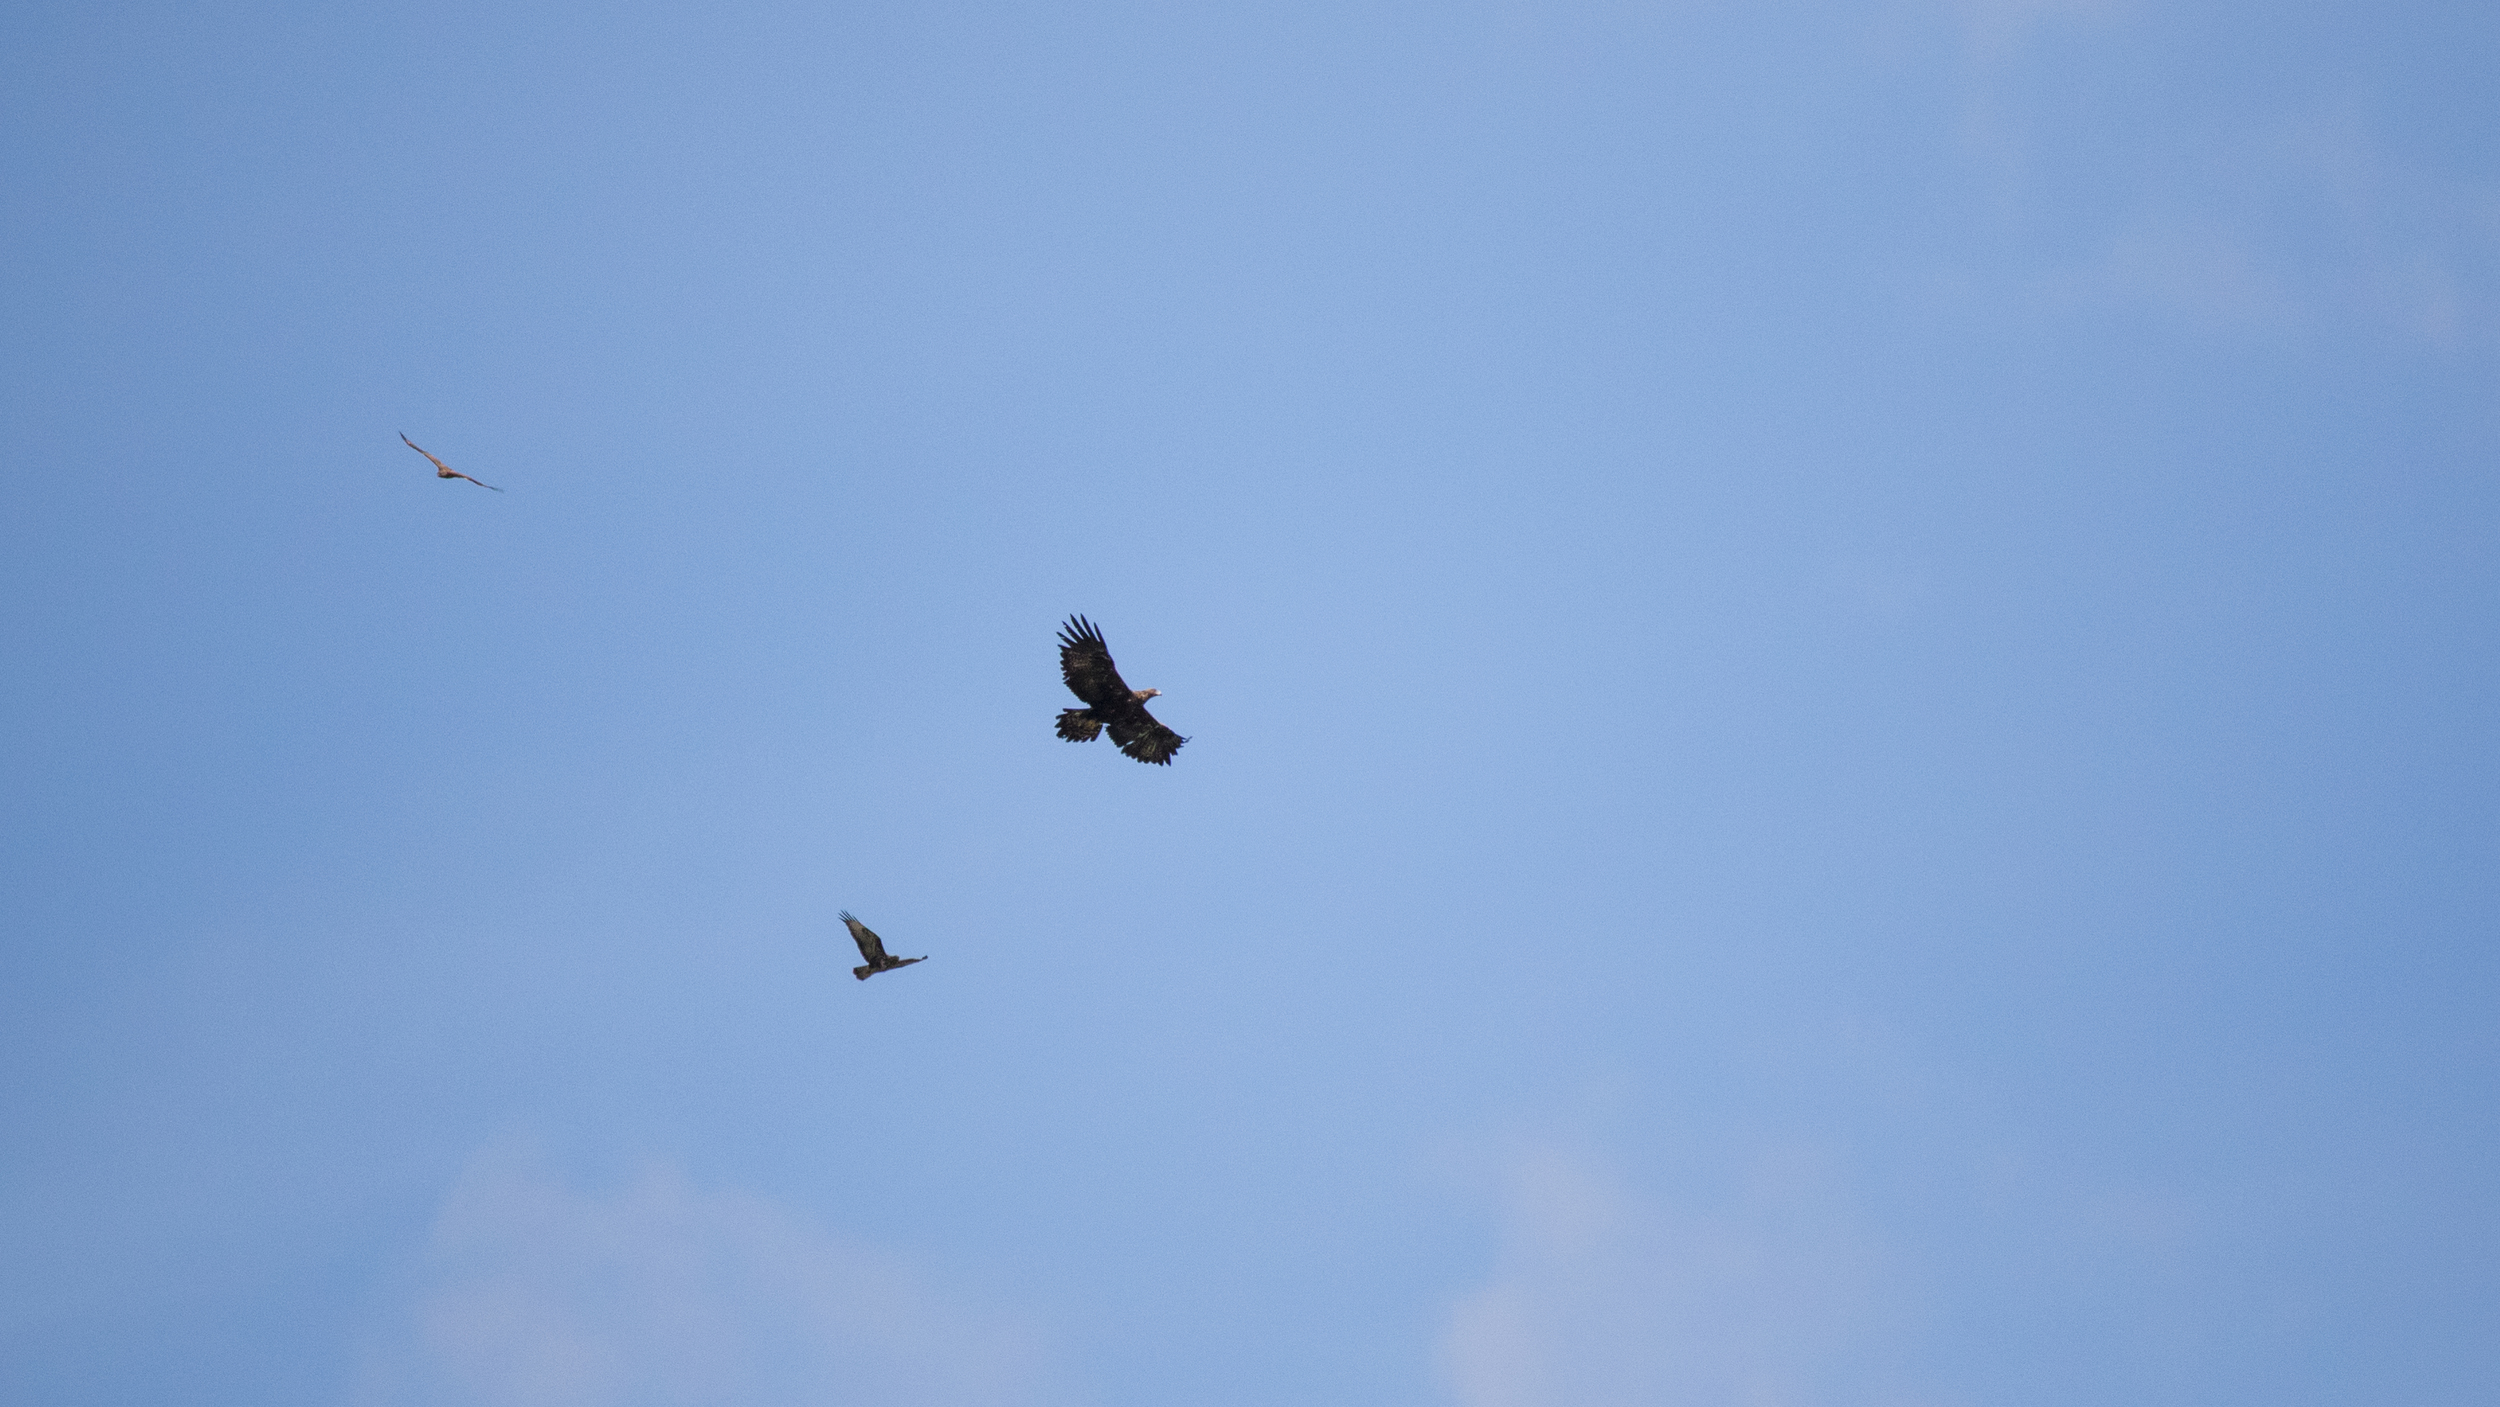 Golden Eagle (Aquila chrysaetos) in Cordon, France. May 2015. Not baited. Not called in.